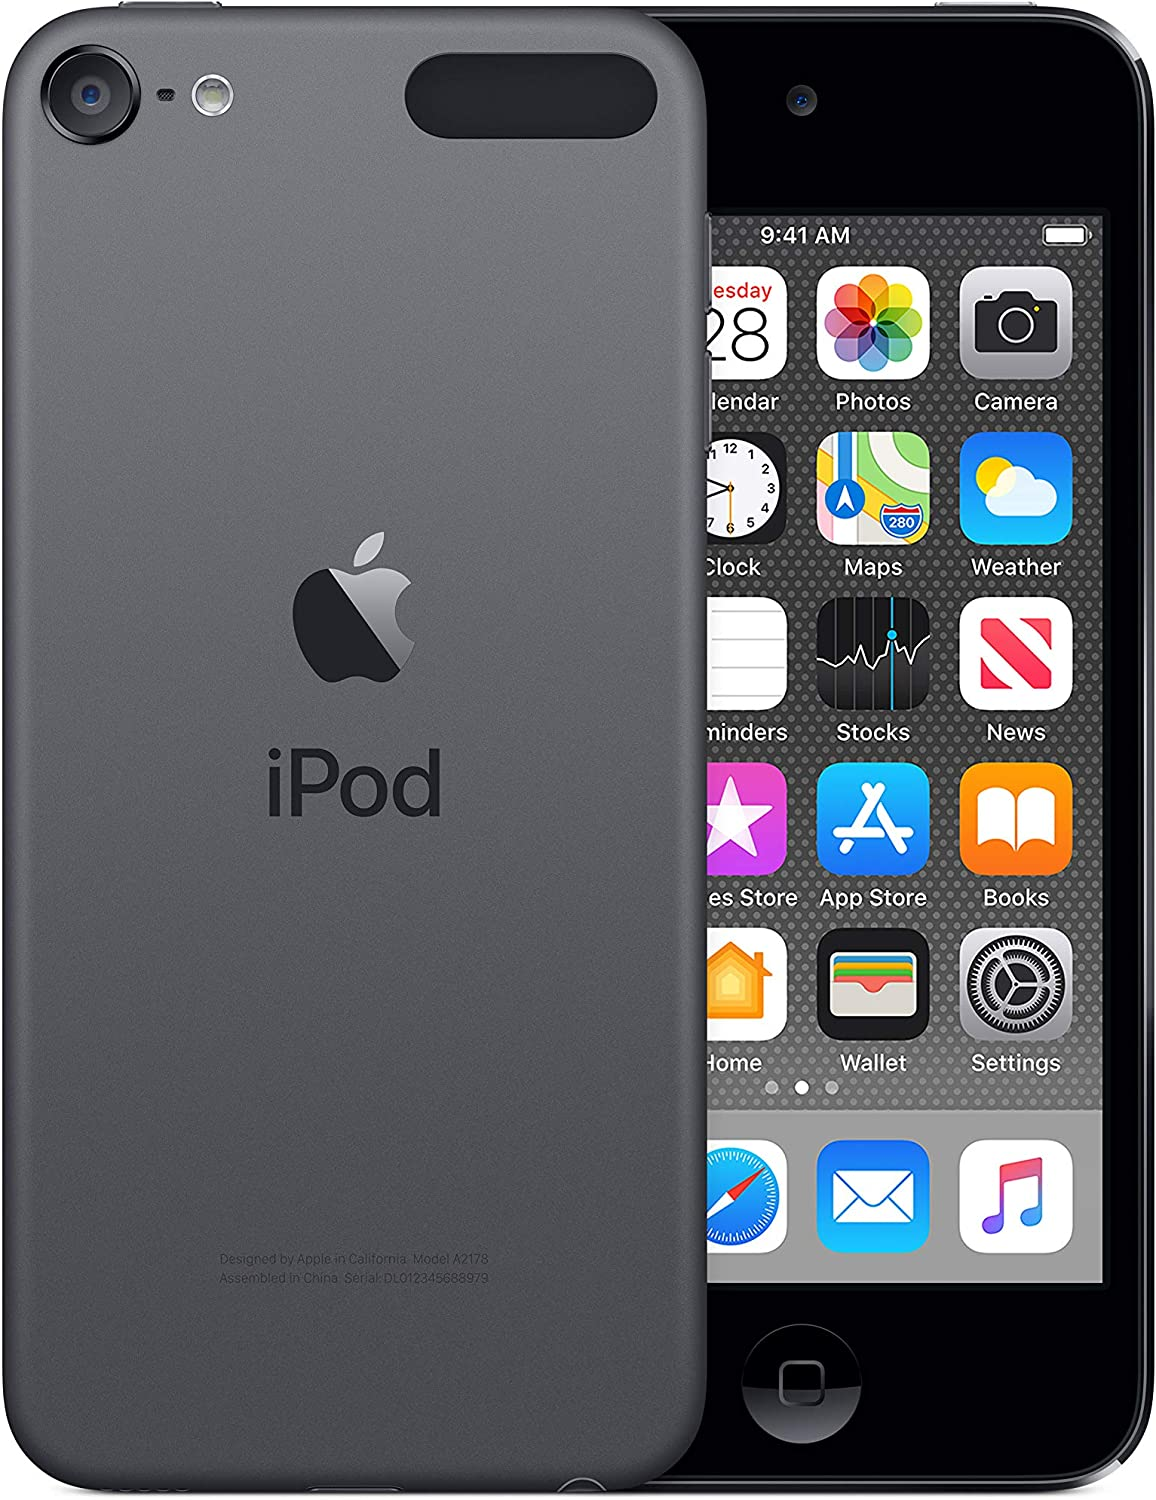 Apple iPod Touch in space gray 32gb